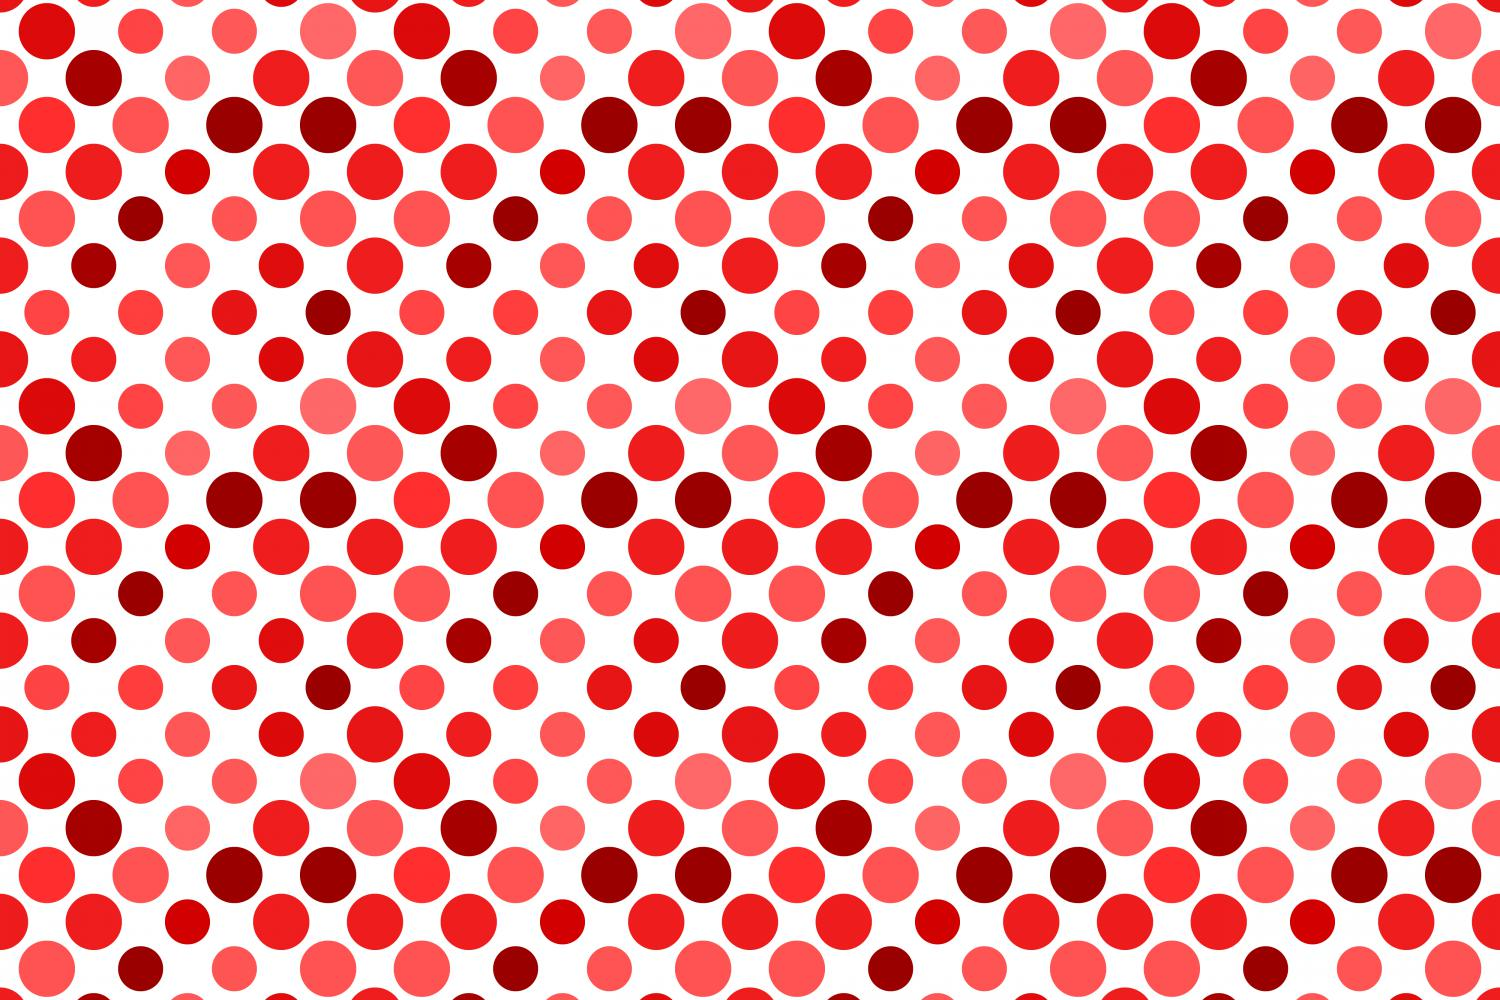 24 Seamless Red Dot Patterns example image 5